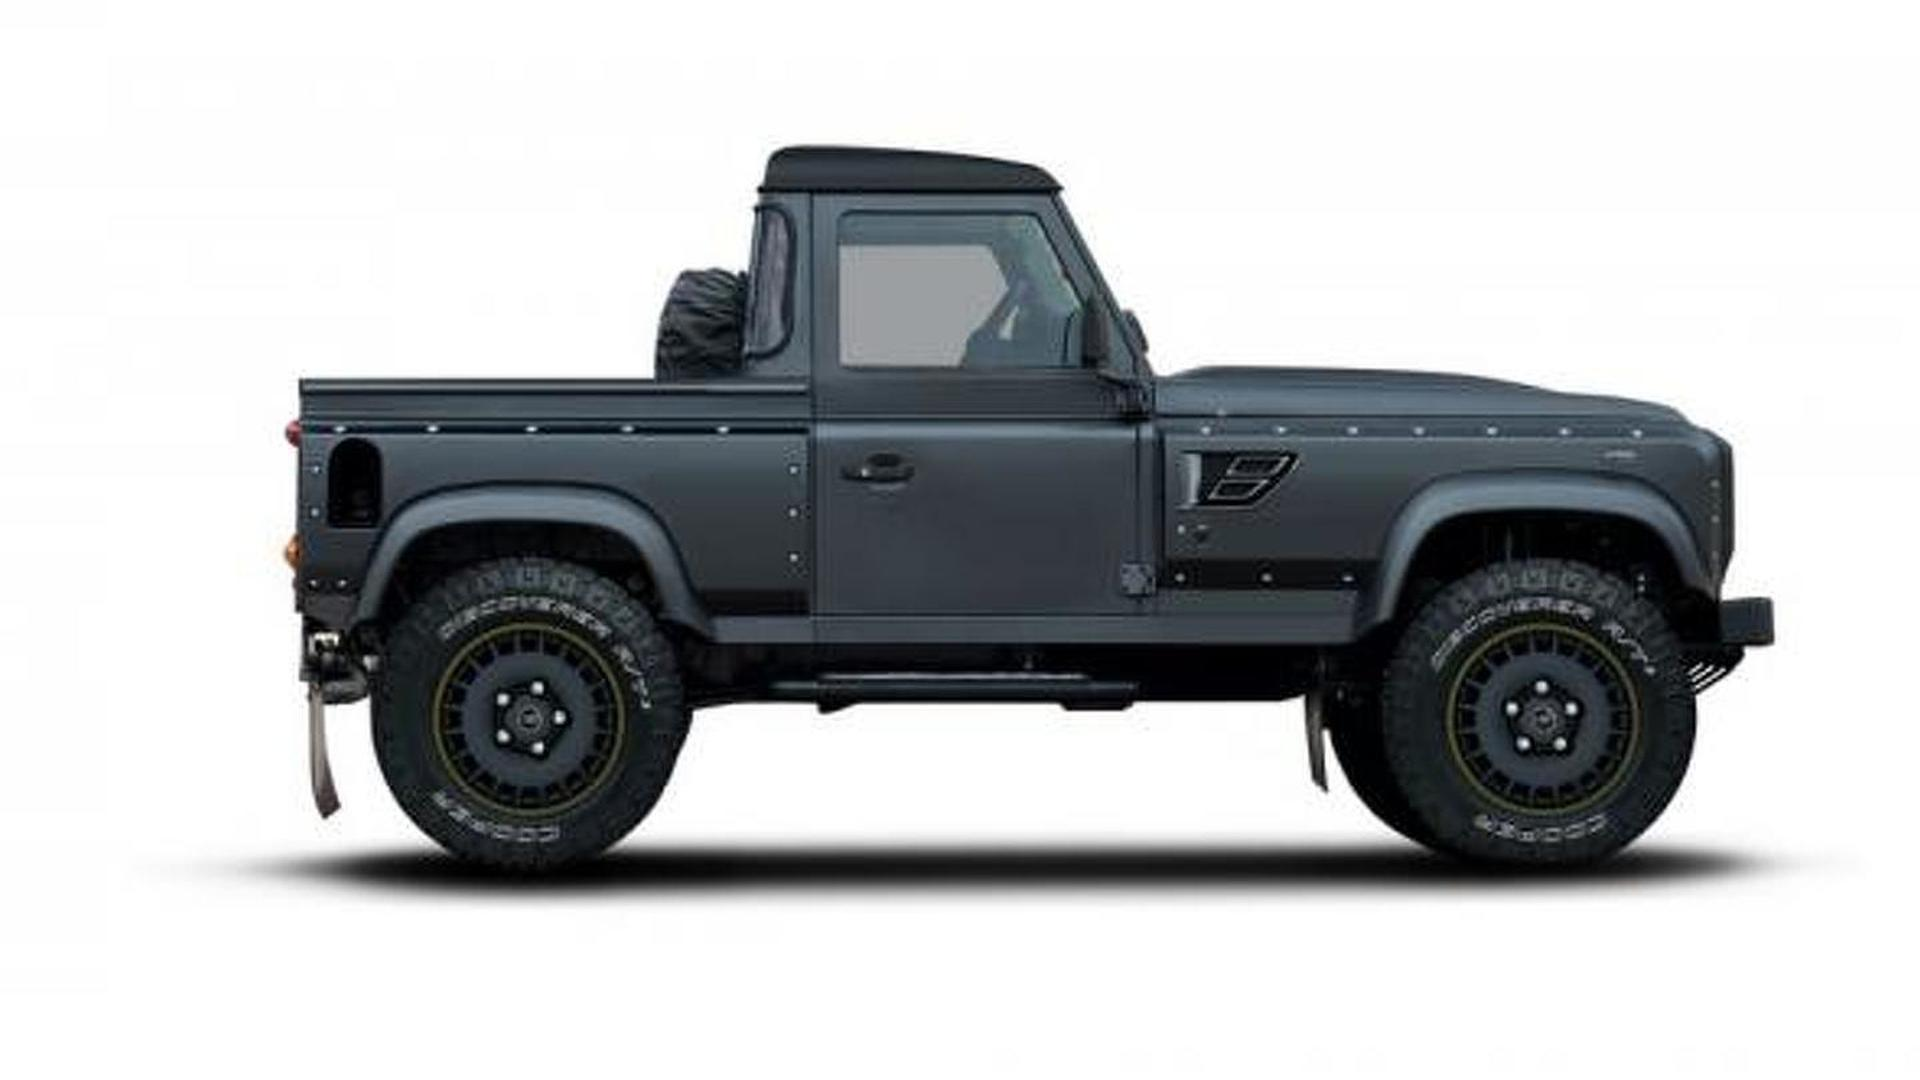 Kahn Design previews their Flying Huntsman 105 Pick Up